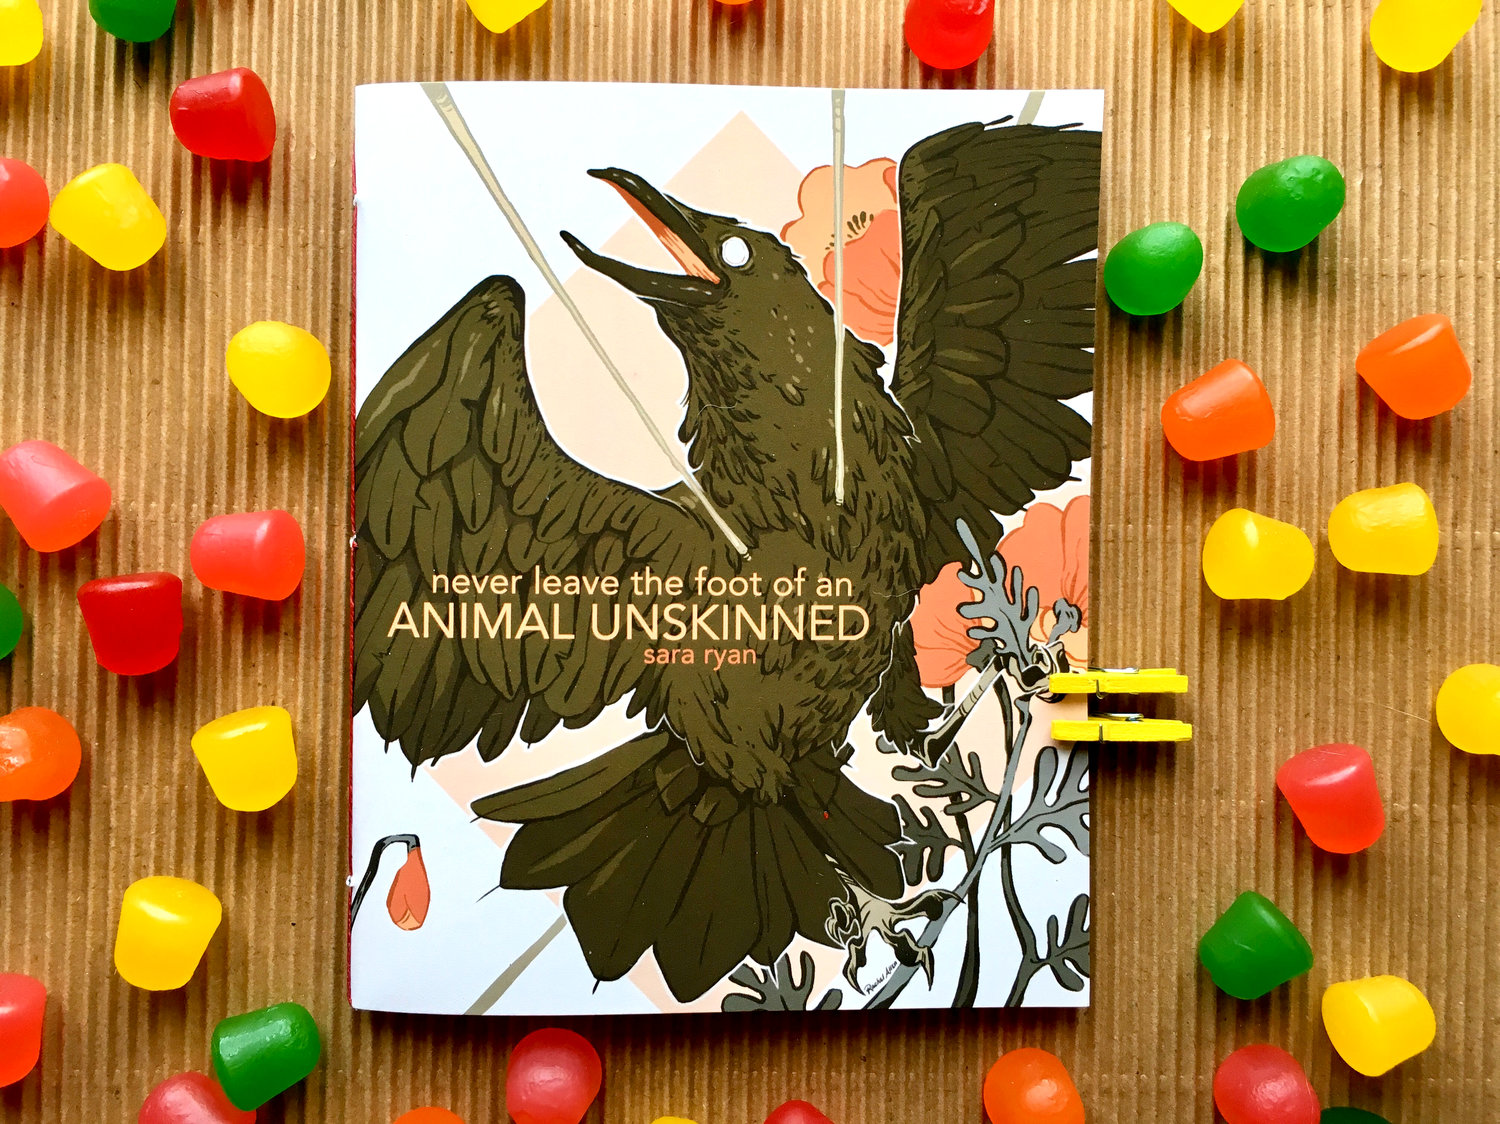 Never Leave the Foot of an Animal Unskinned by Sara Ryan - available from Porkbelly Press